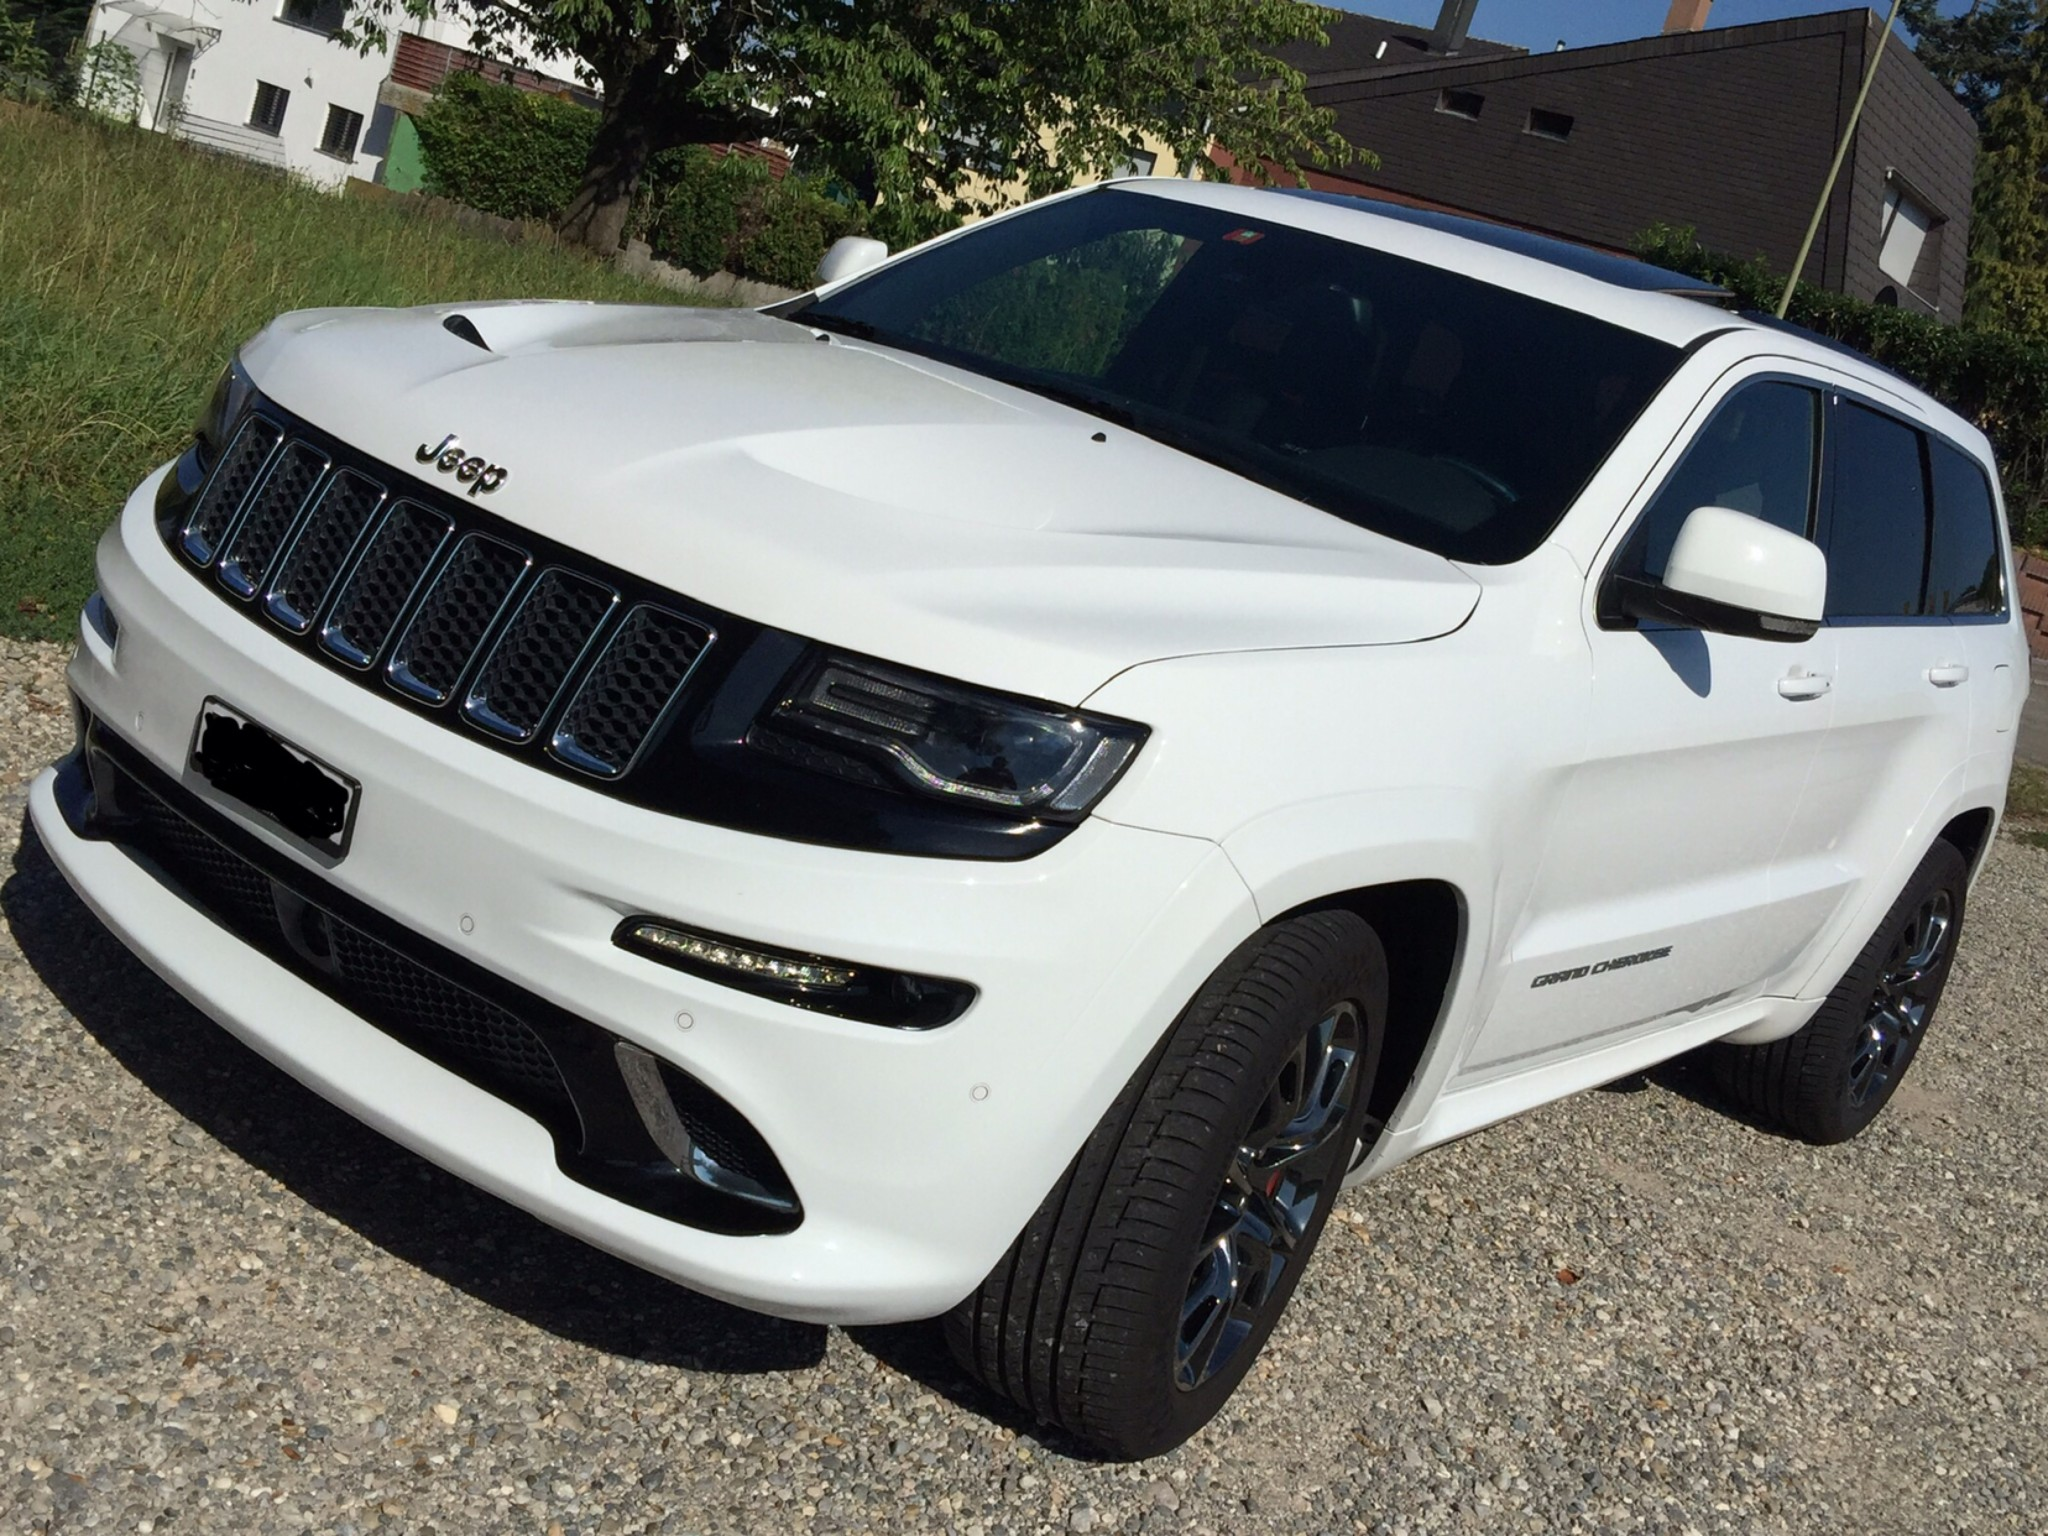 suv Jeep Grand Cherokee 6.4 V8 HEMI SRT